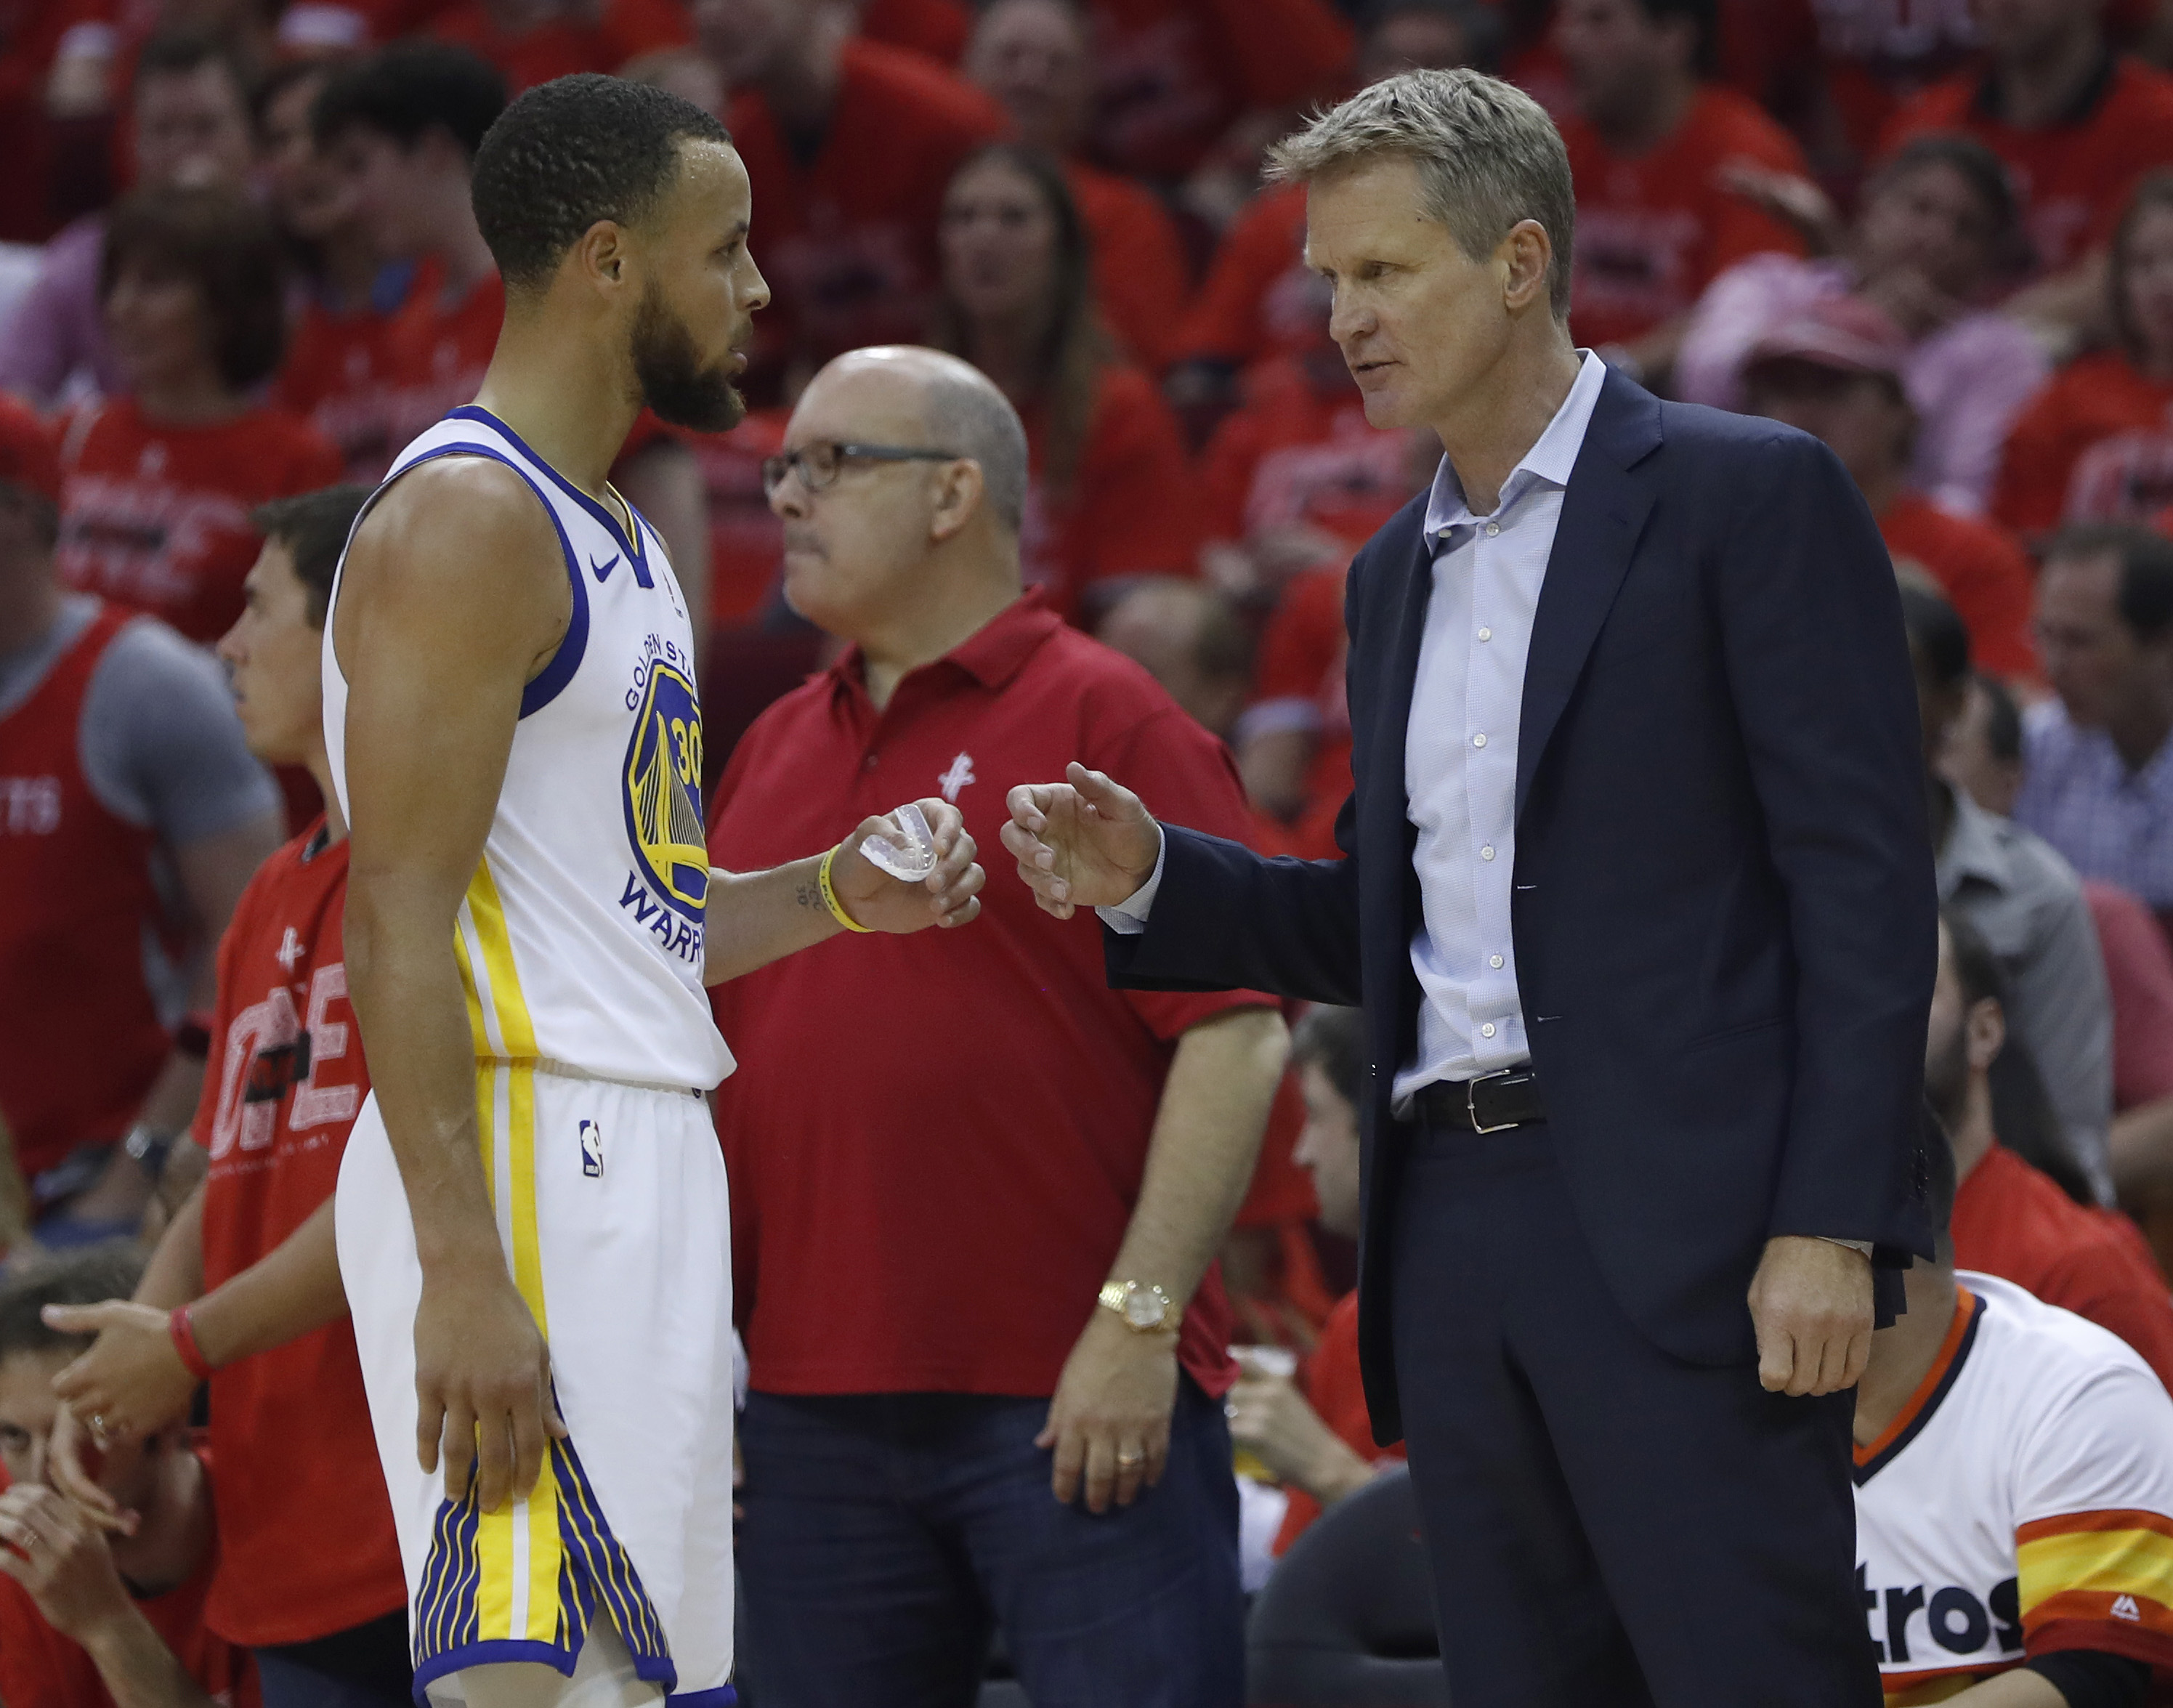 Replay overturn plays key role in Warriors' Game 1 win